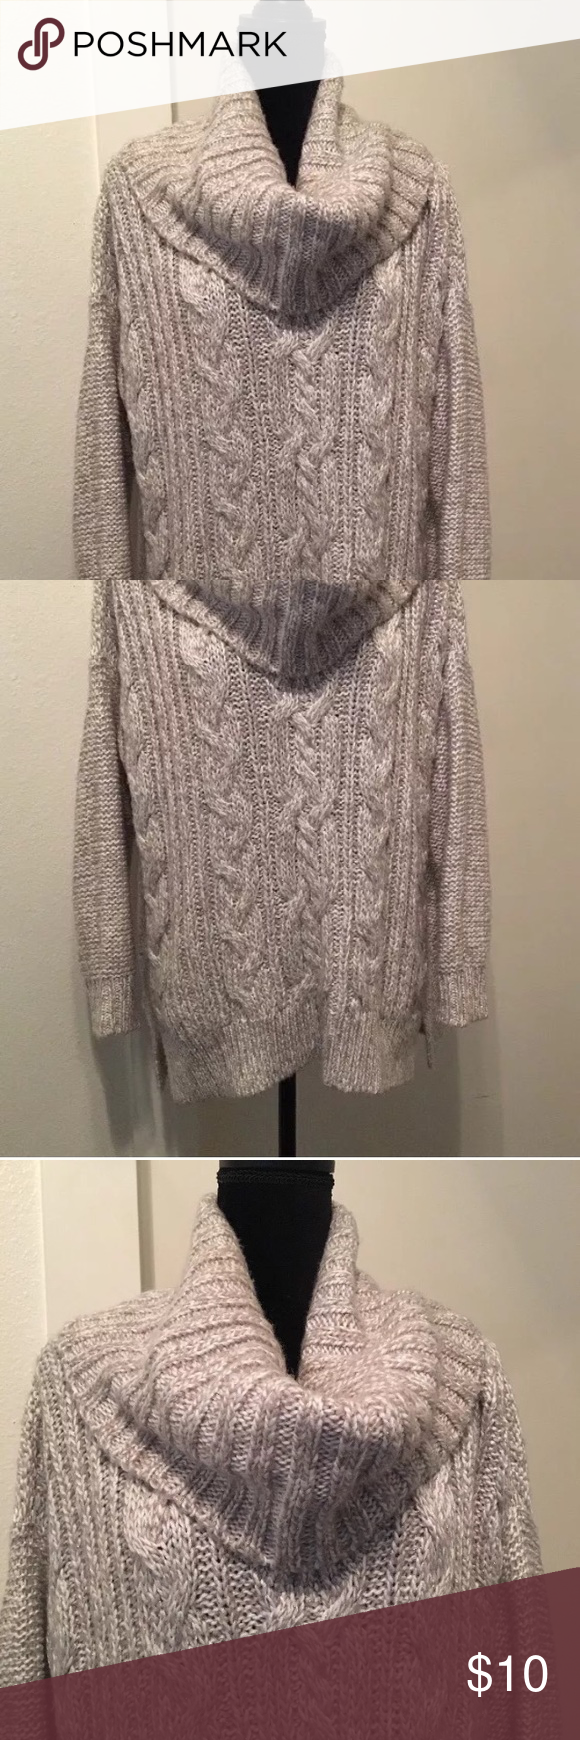 Cowl neck Chunky oversized high low sweater | Cowl neck, High low ...